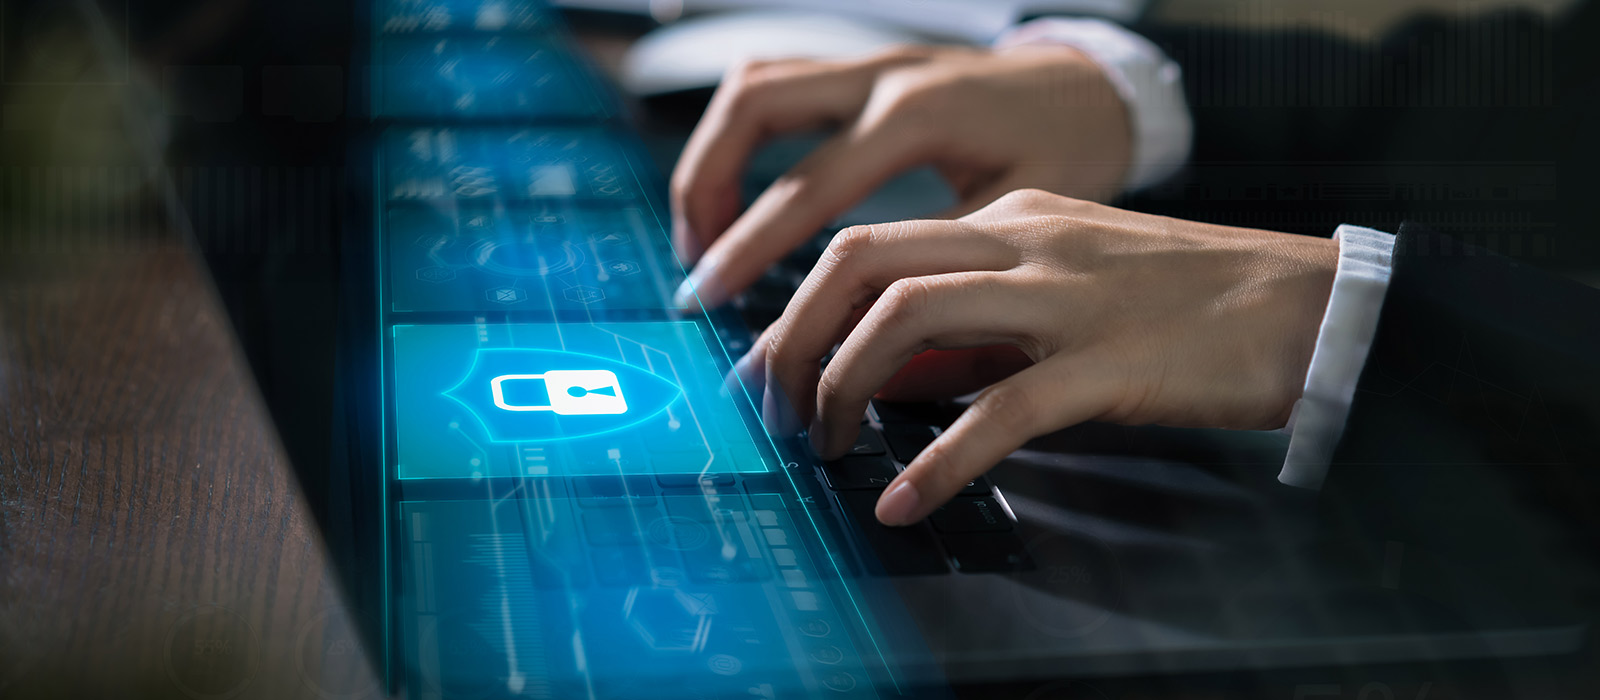 Digital Forensics - Forensics Is Not Just For Large Corporations